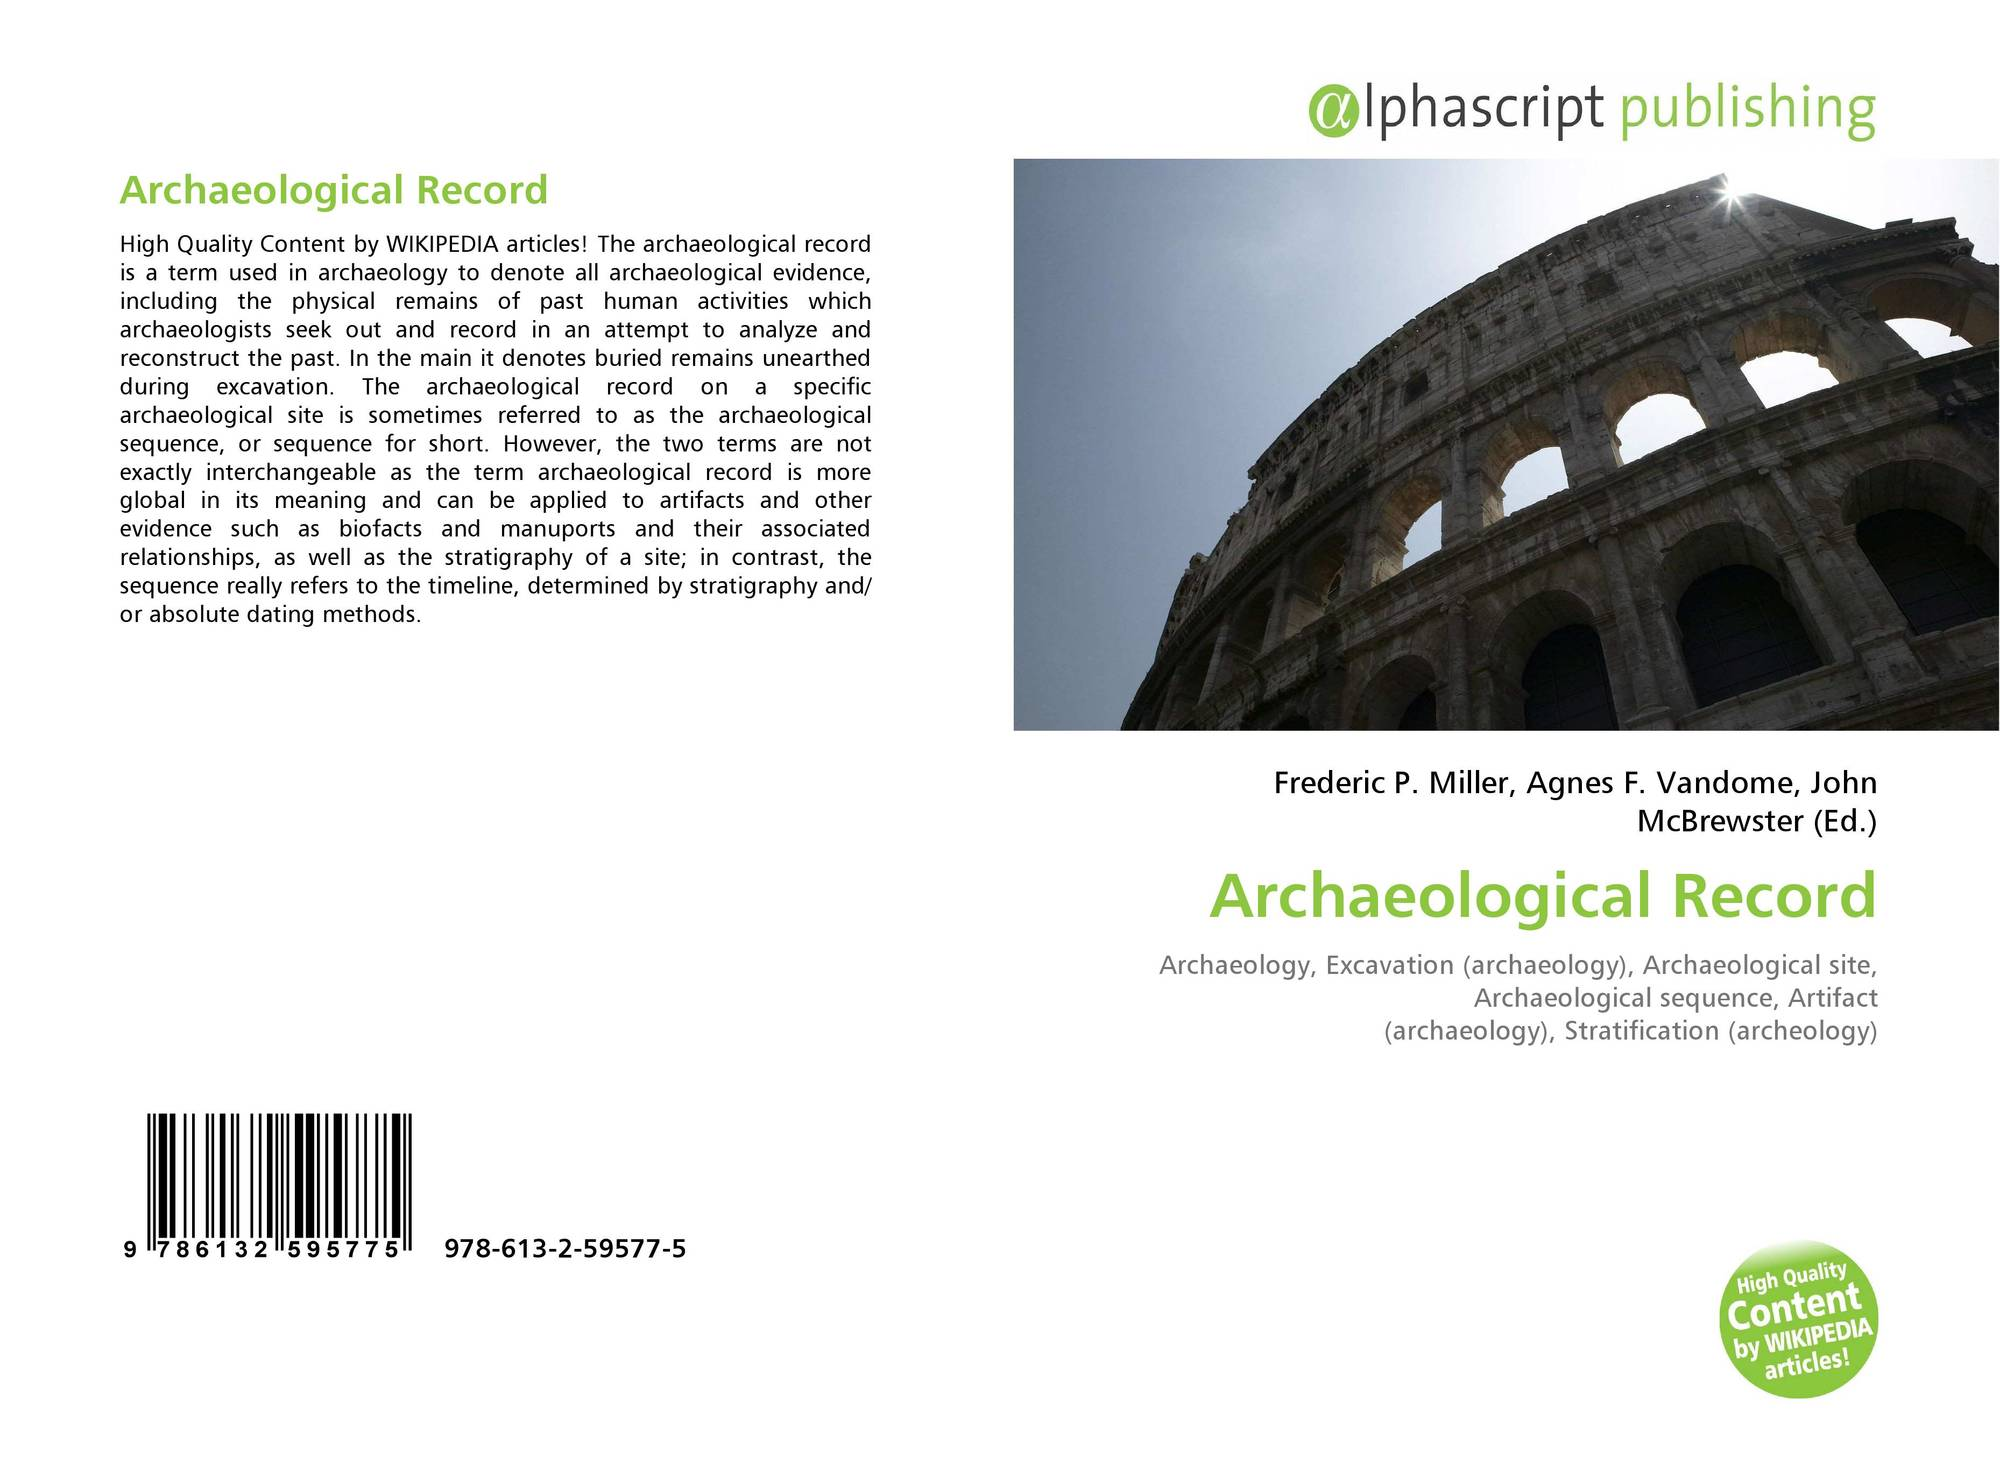 Dating methods in archaeology pdf 1